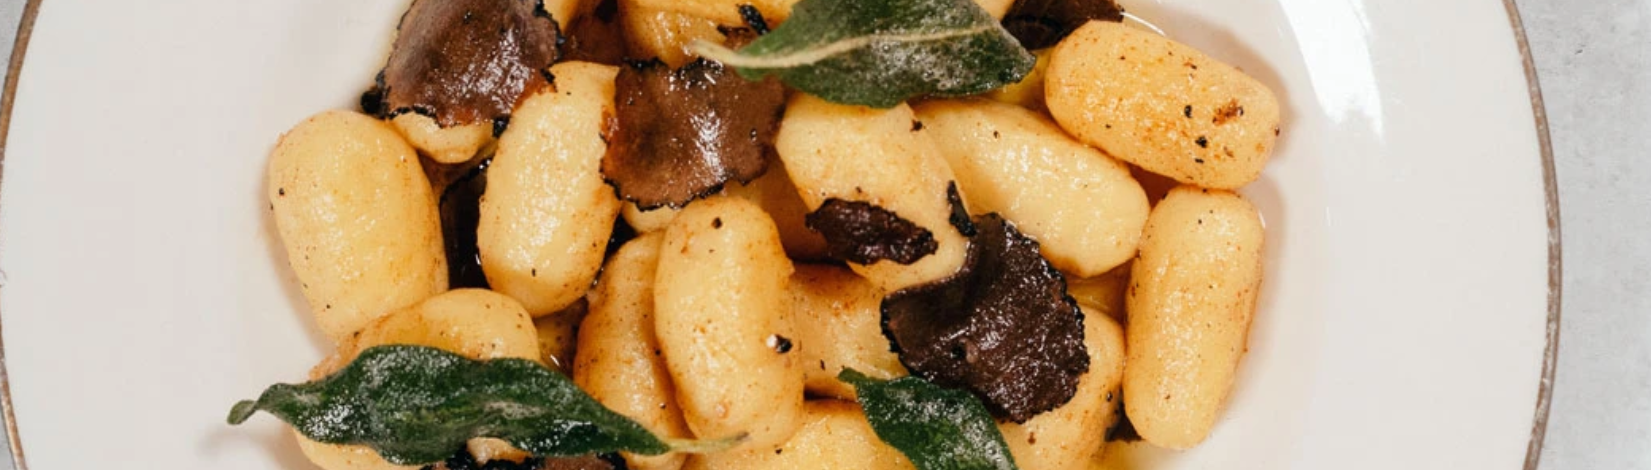 Image of Sweet Potato Gnocchi with Truffle Brown Butter